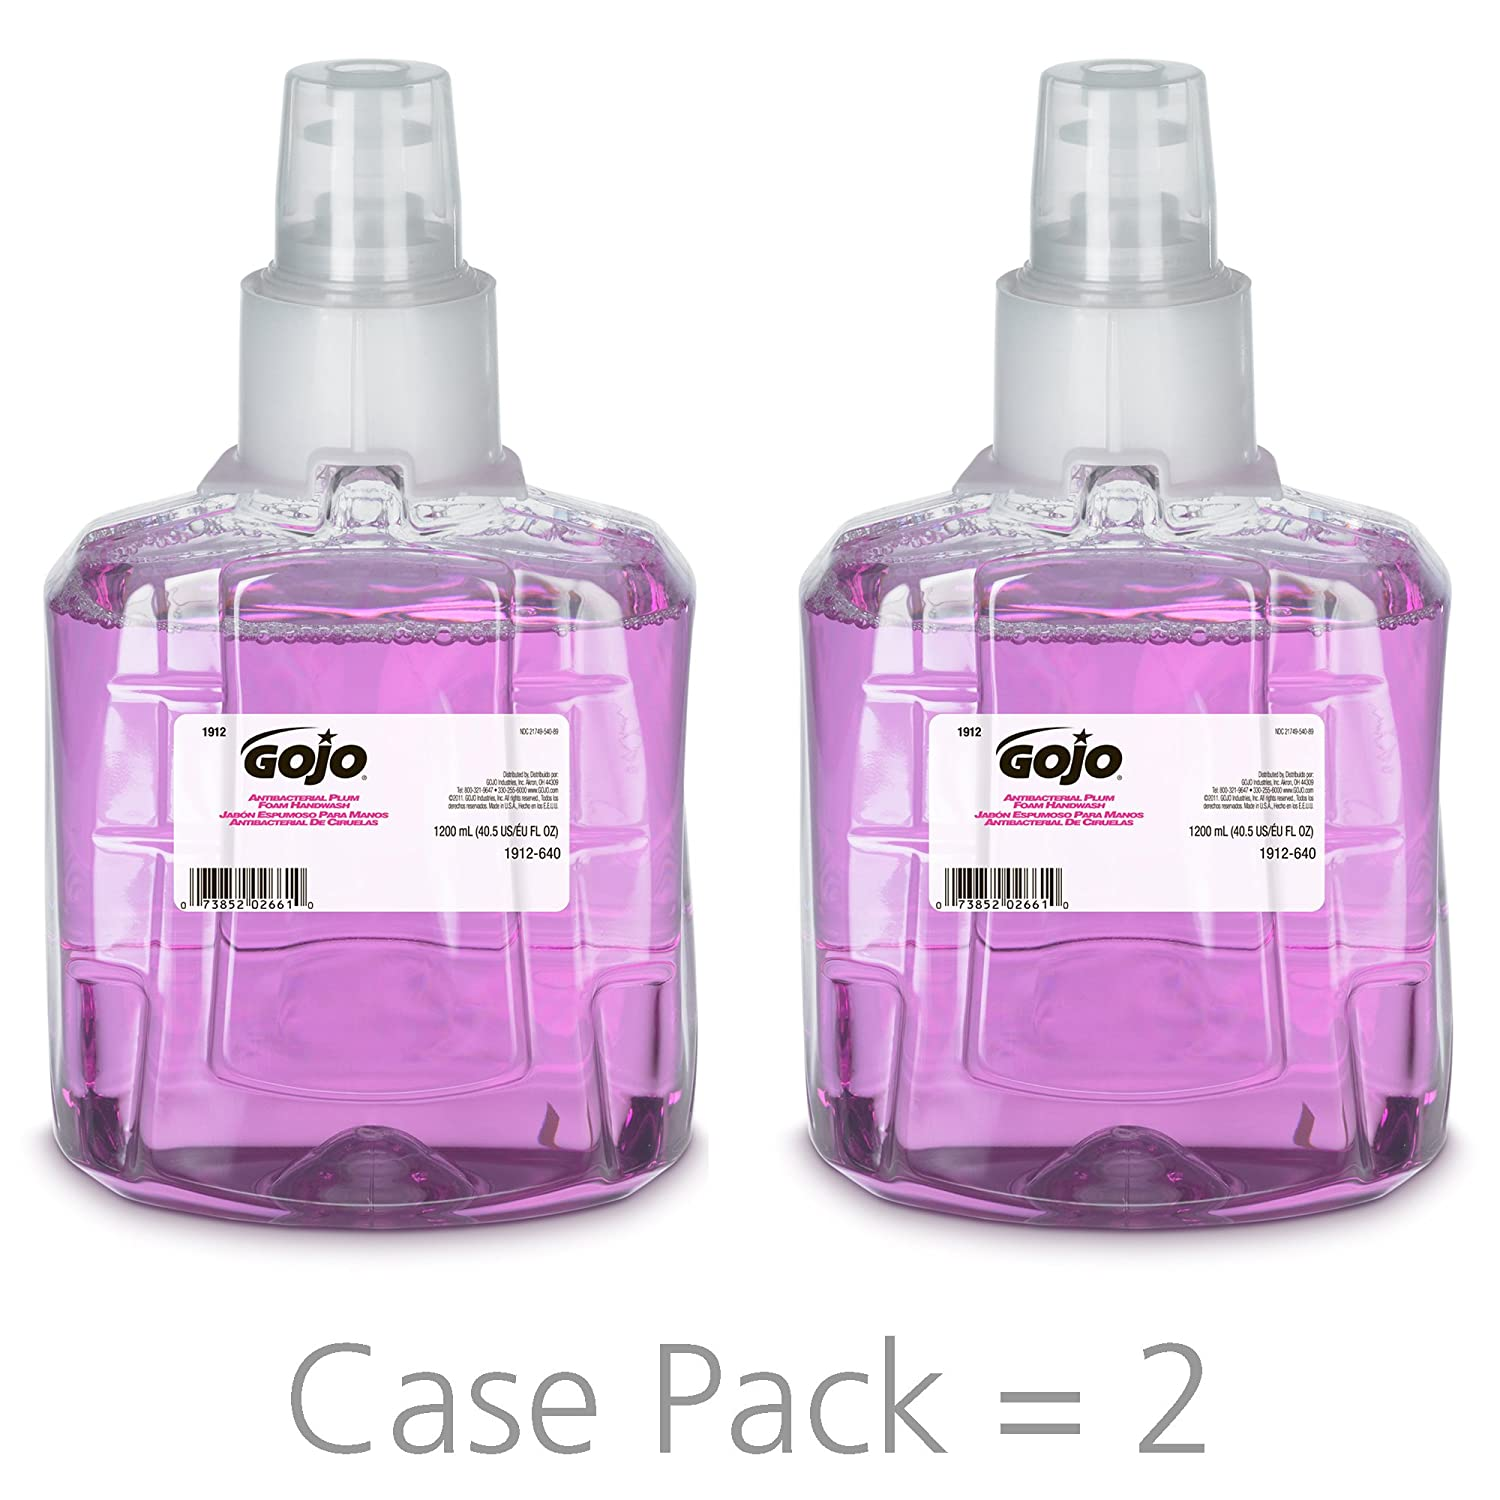 GOJO Antibacterial Foam Handwash, Plum Fragrance, 1200 mL Foam Hand Soap Refill for GOJO LTX-12 Touch-Free Dispenser (Pack of 2) - 1912-02